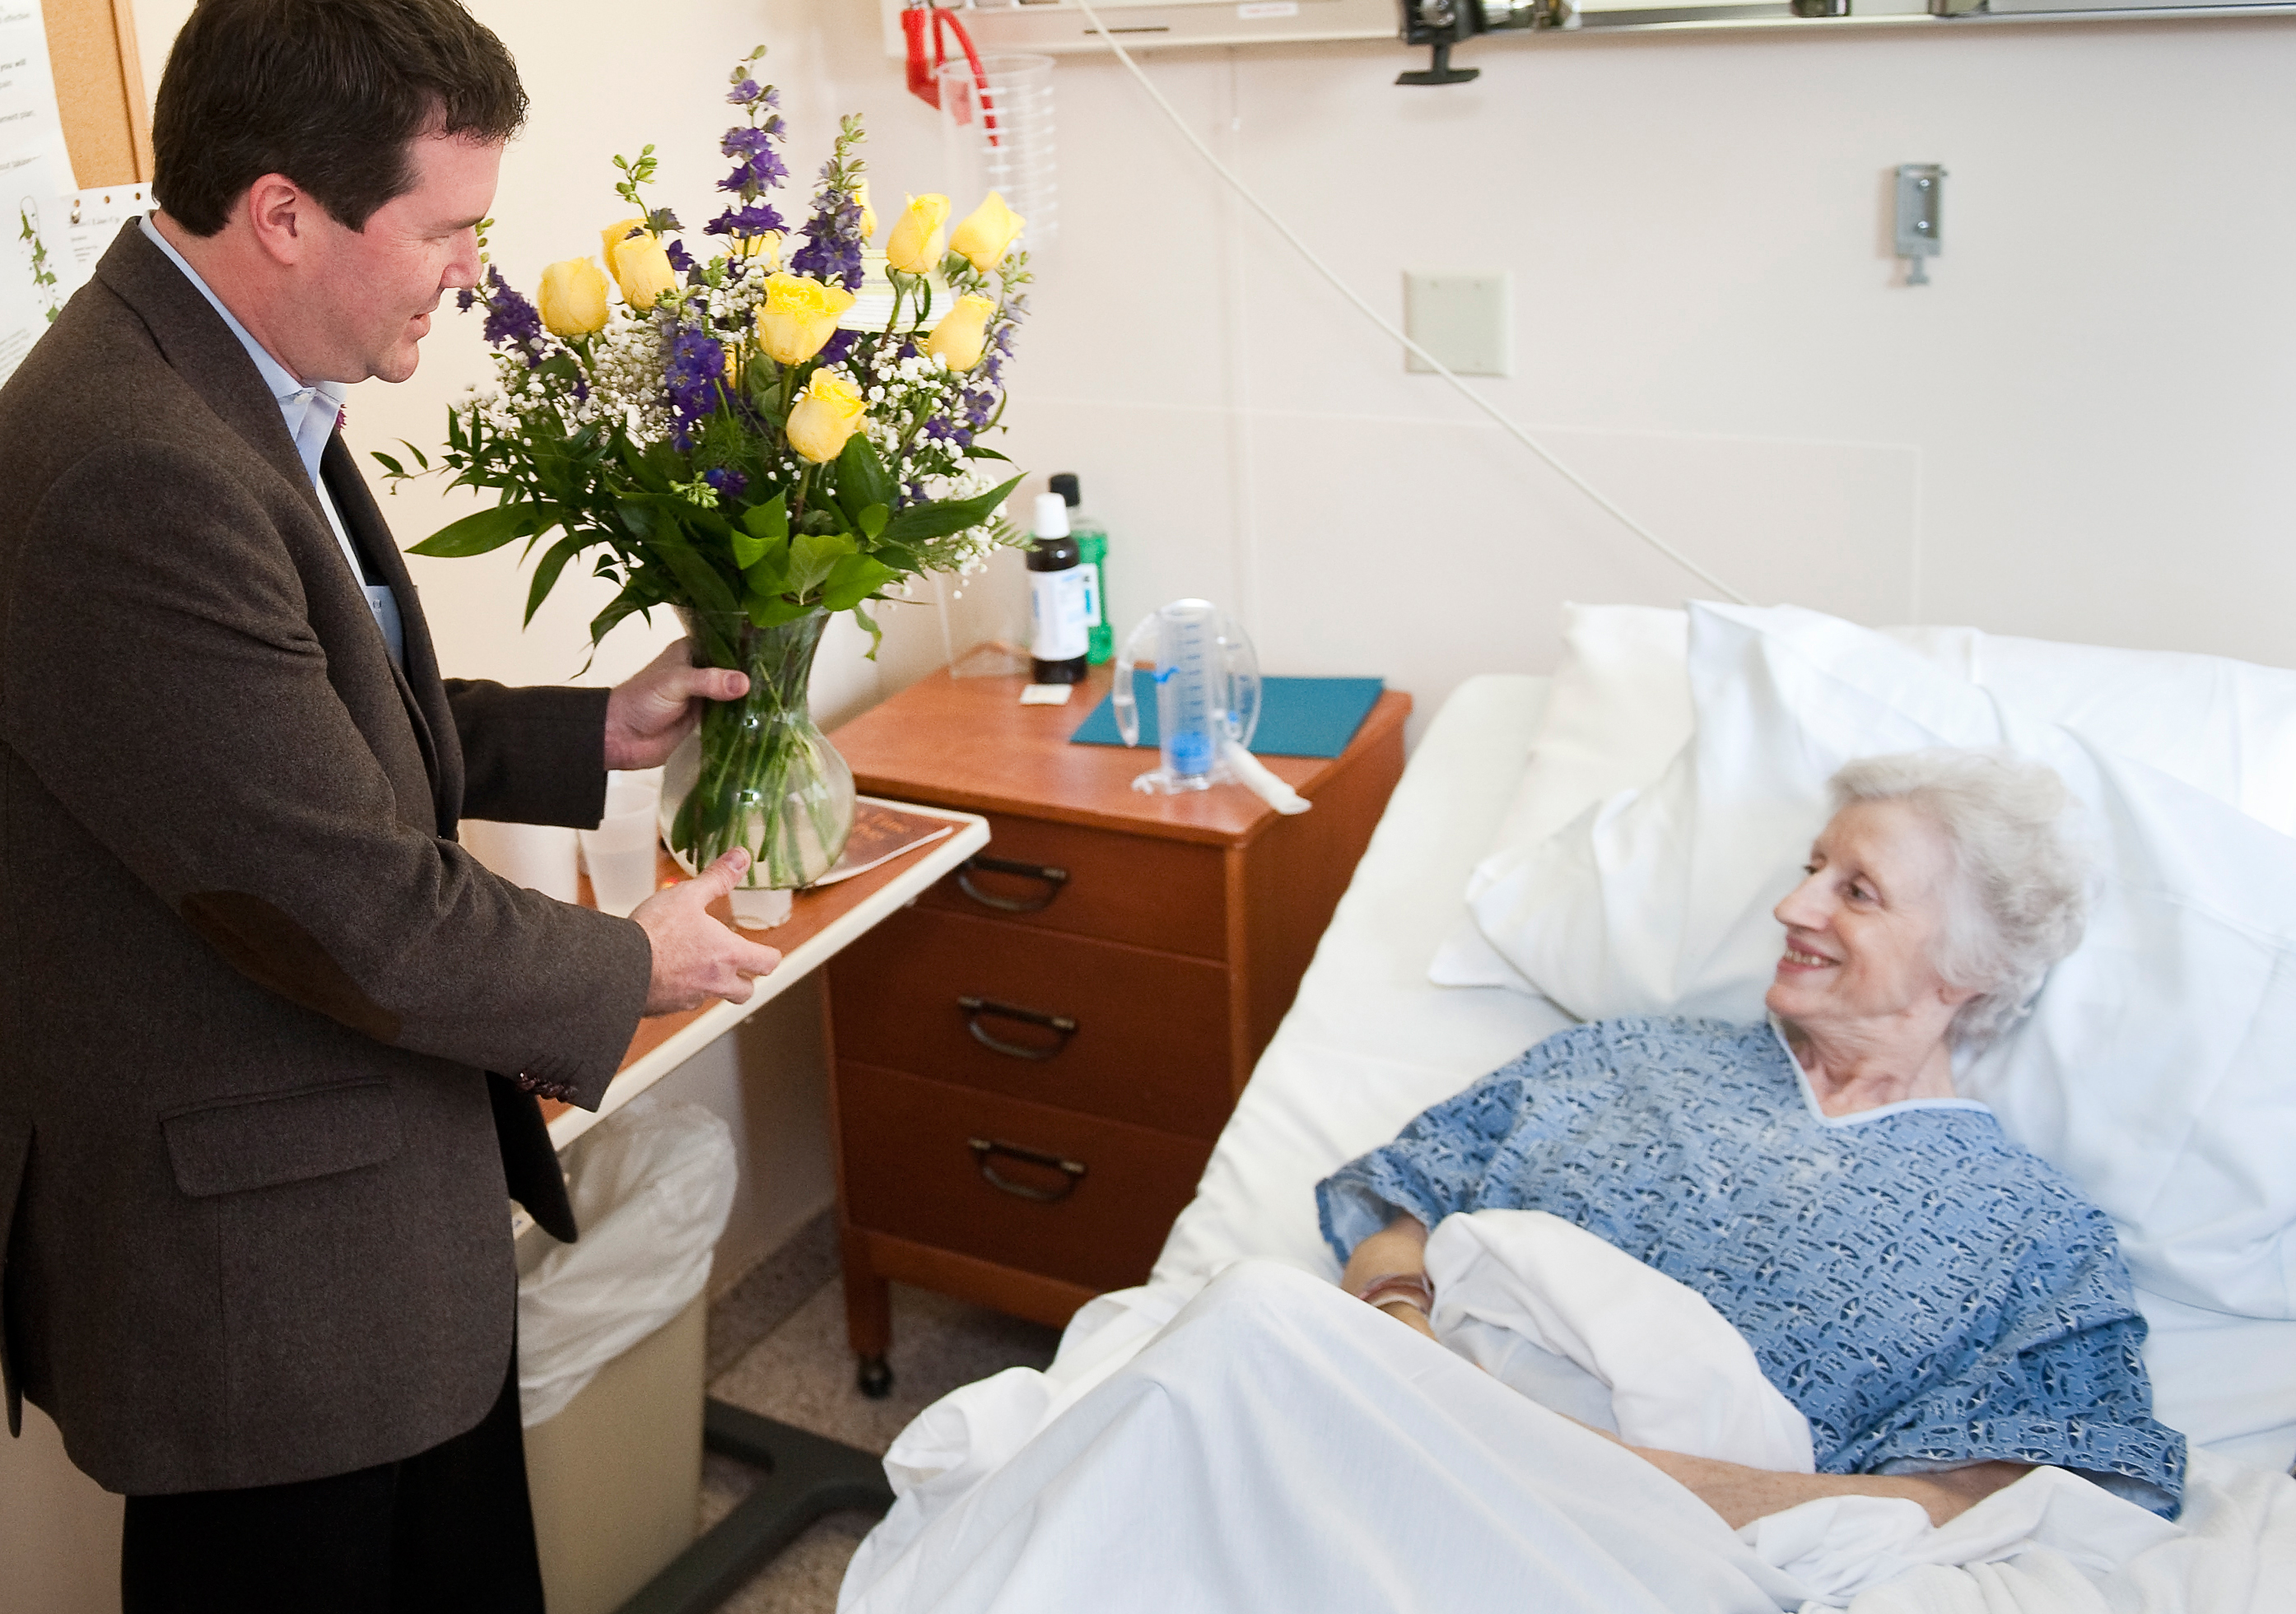 Larsen Jay giving flowers to patient